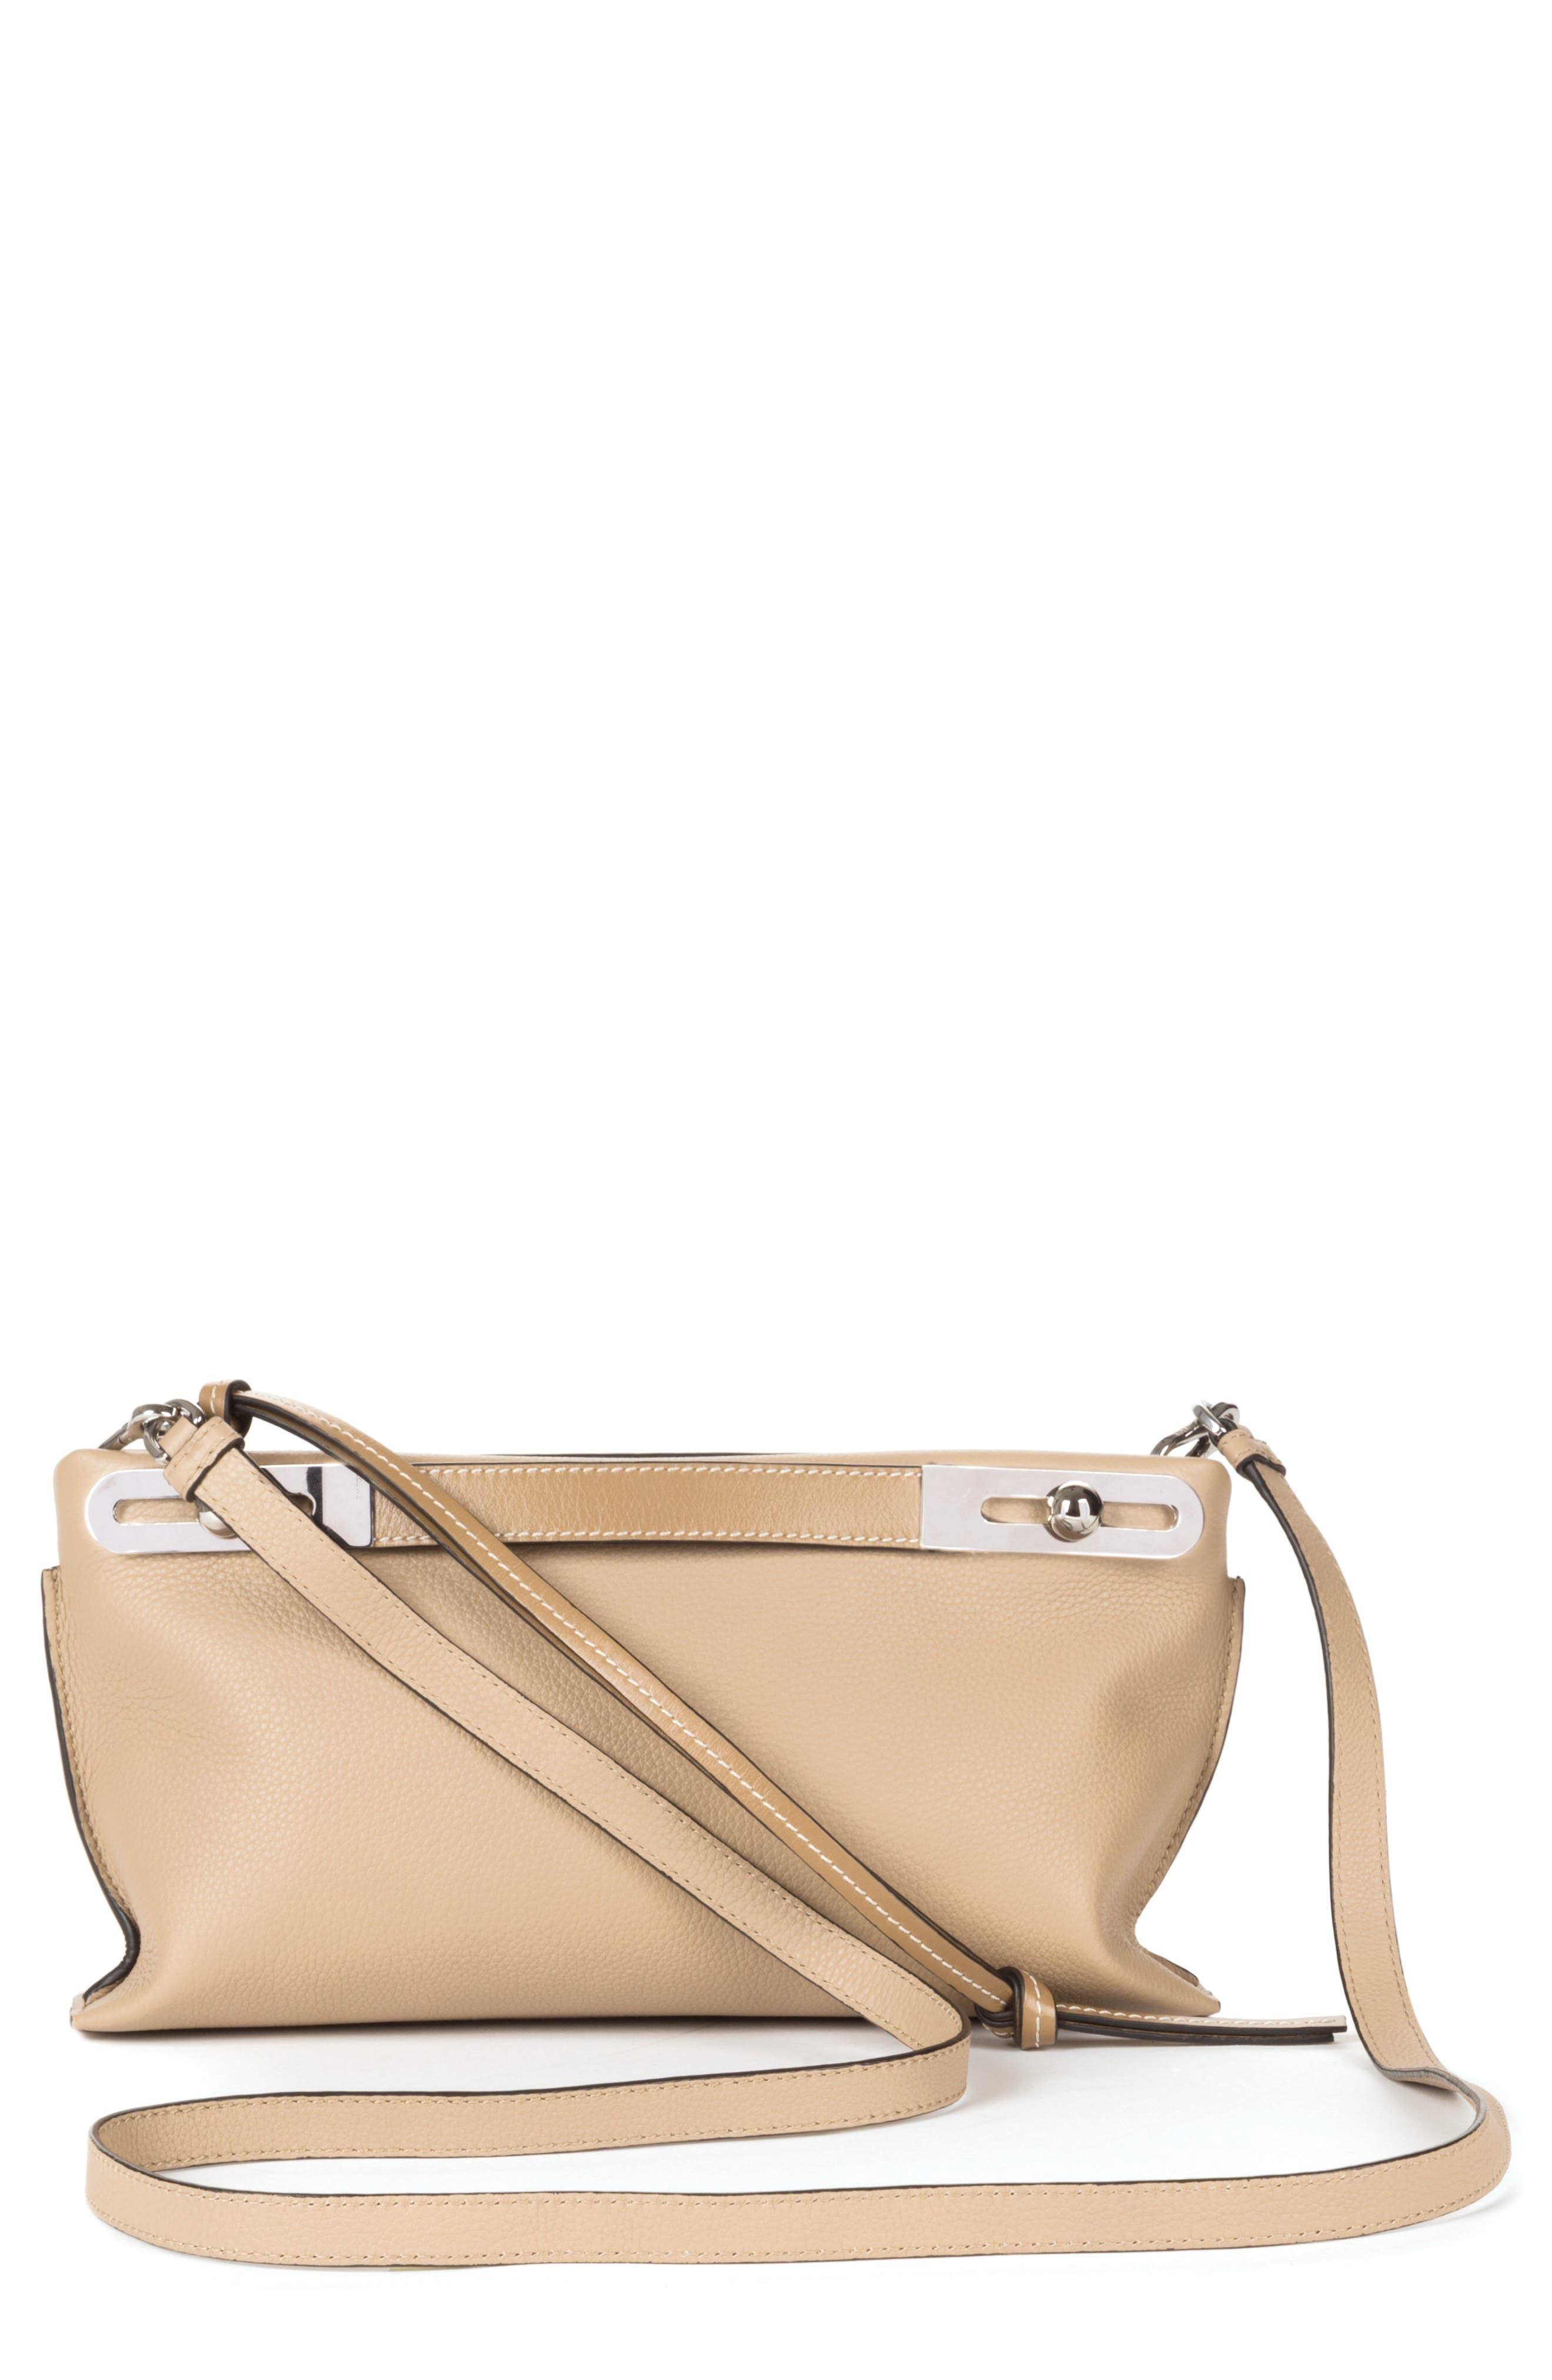 Small Missy Leather Crossbody Bag,                         Main,                         color, 269